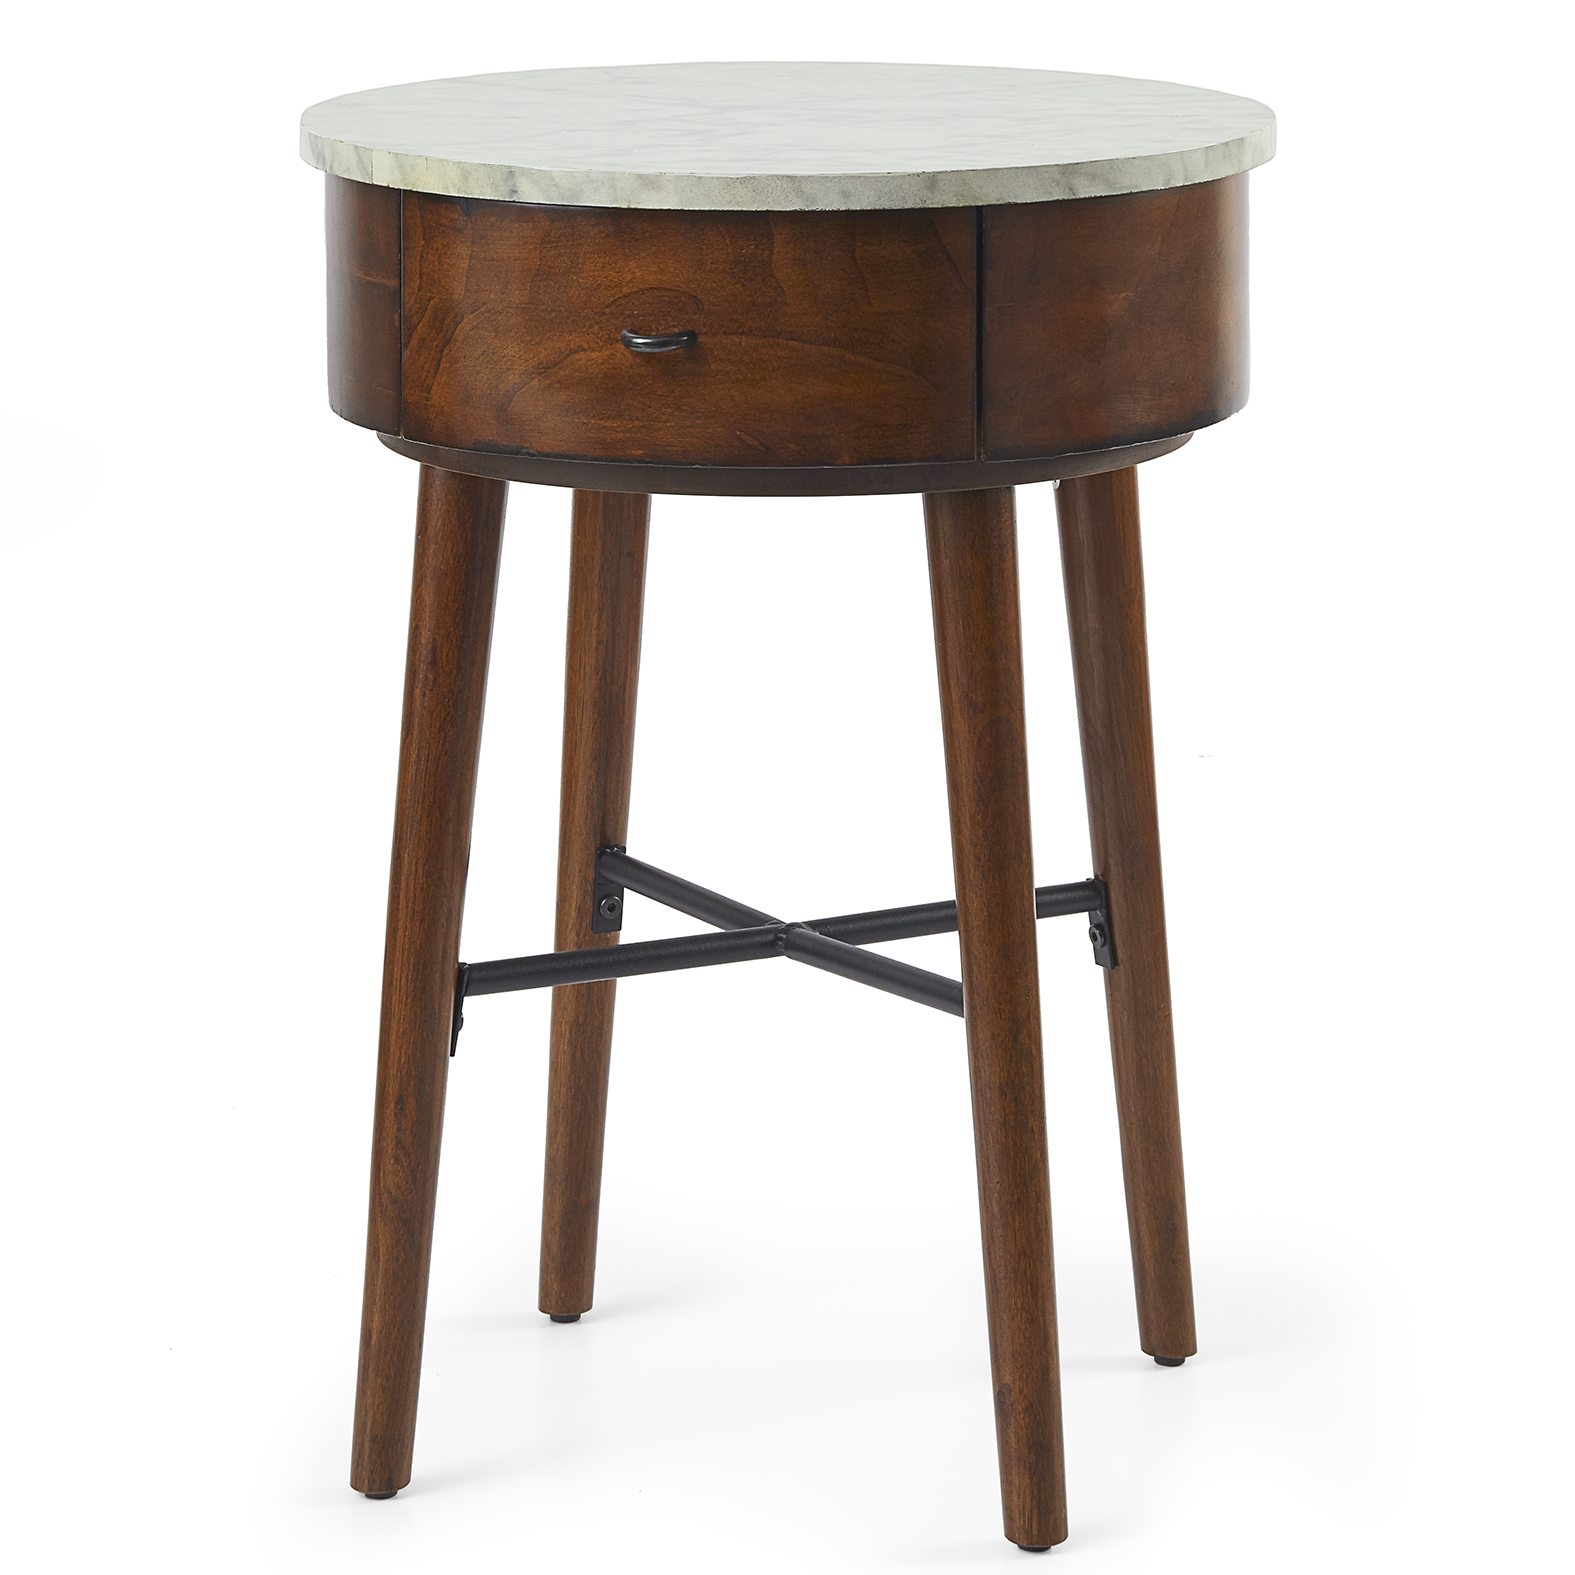 wood wooden round accent table sofa couch side end drawer storage modern living 81438480381 ebay. Black Bedroom Furniture Sets. Home Design Ideas